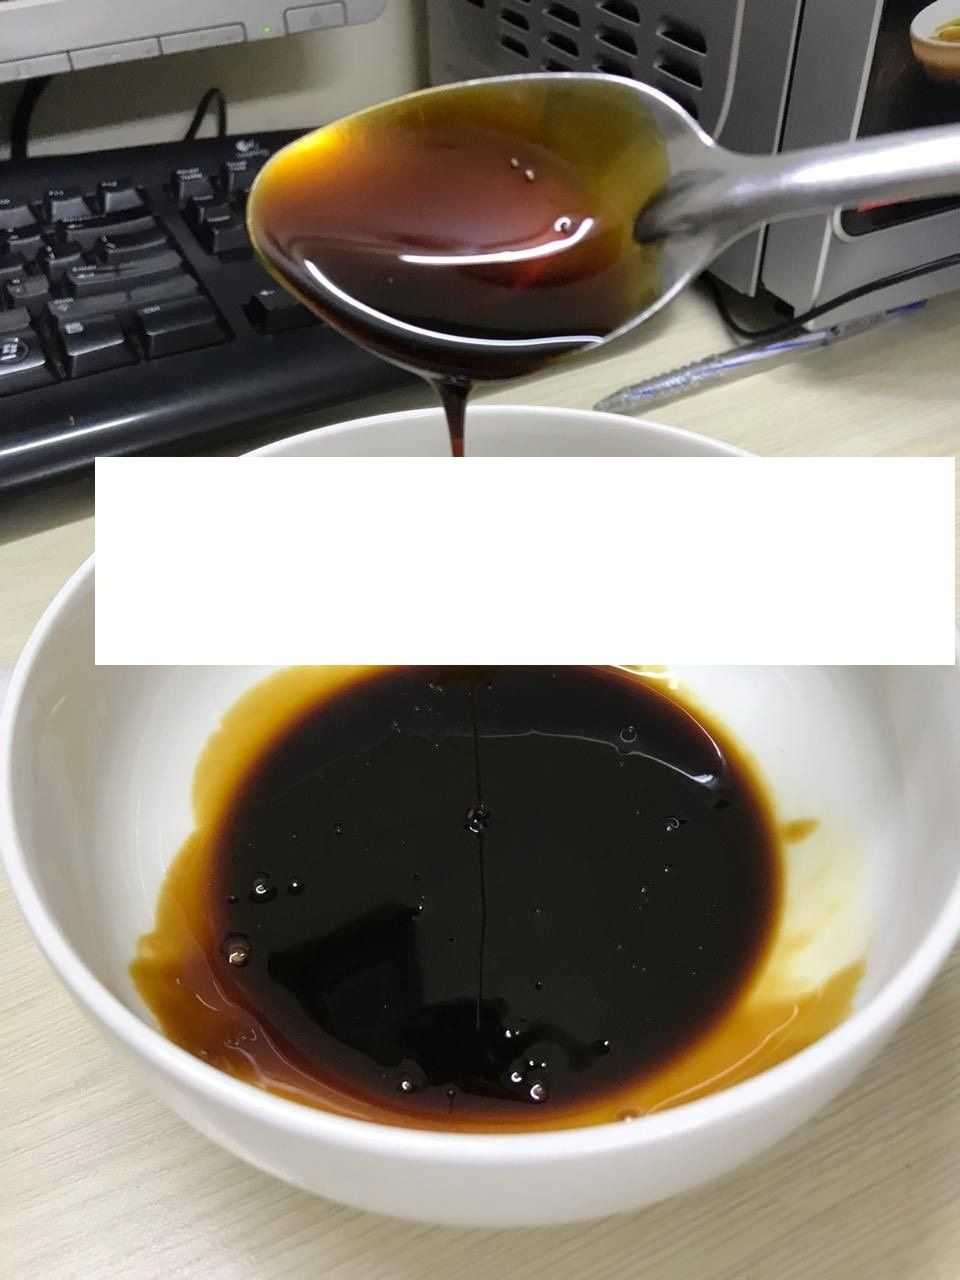 100% Best Raw Material Sugarcane Molasses (Brix Min 75%) With Vietnamese Origin From Vdelta